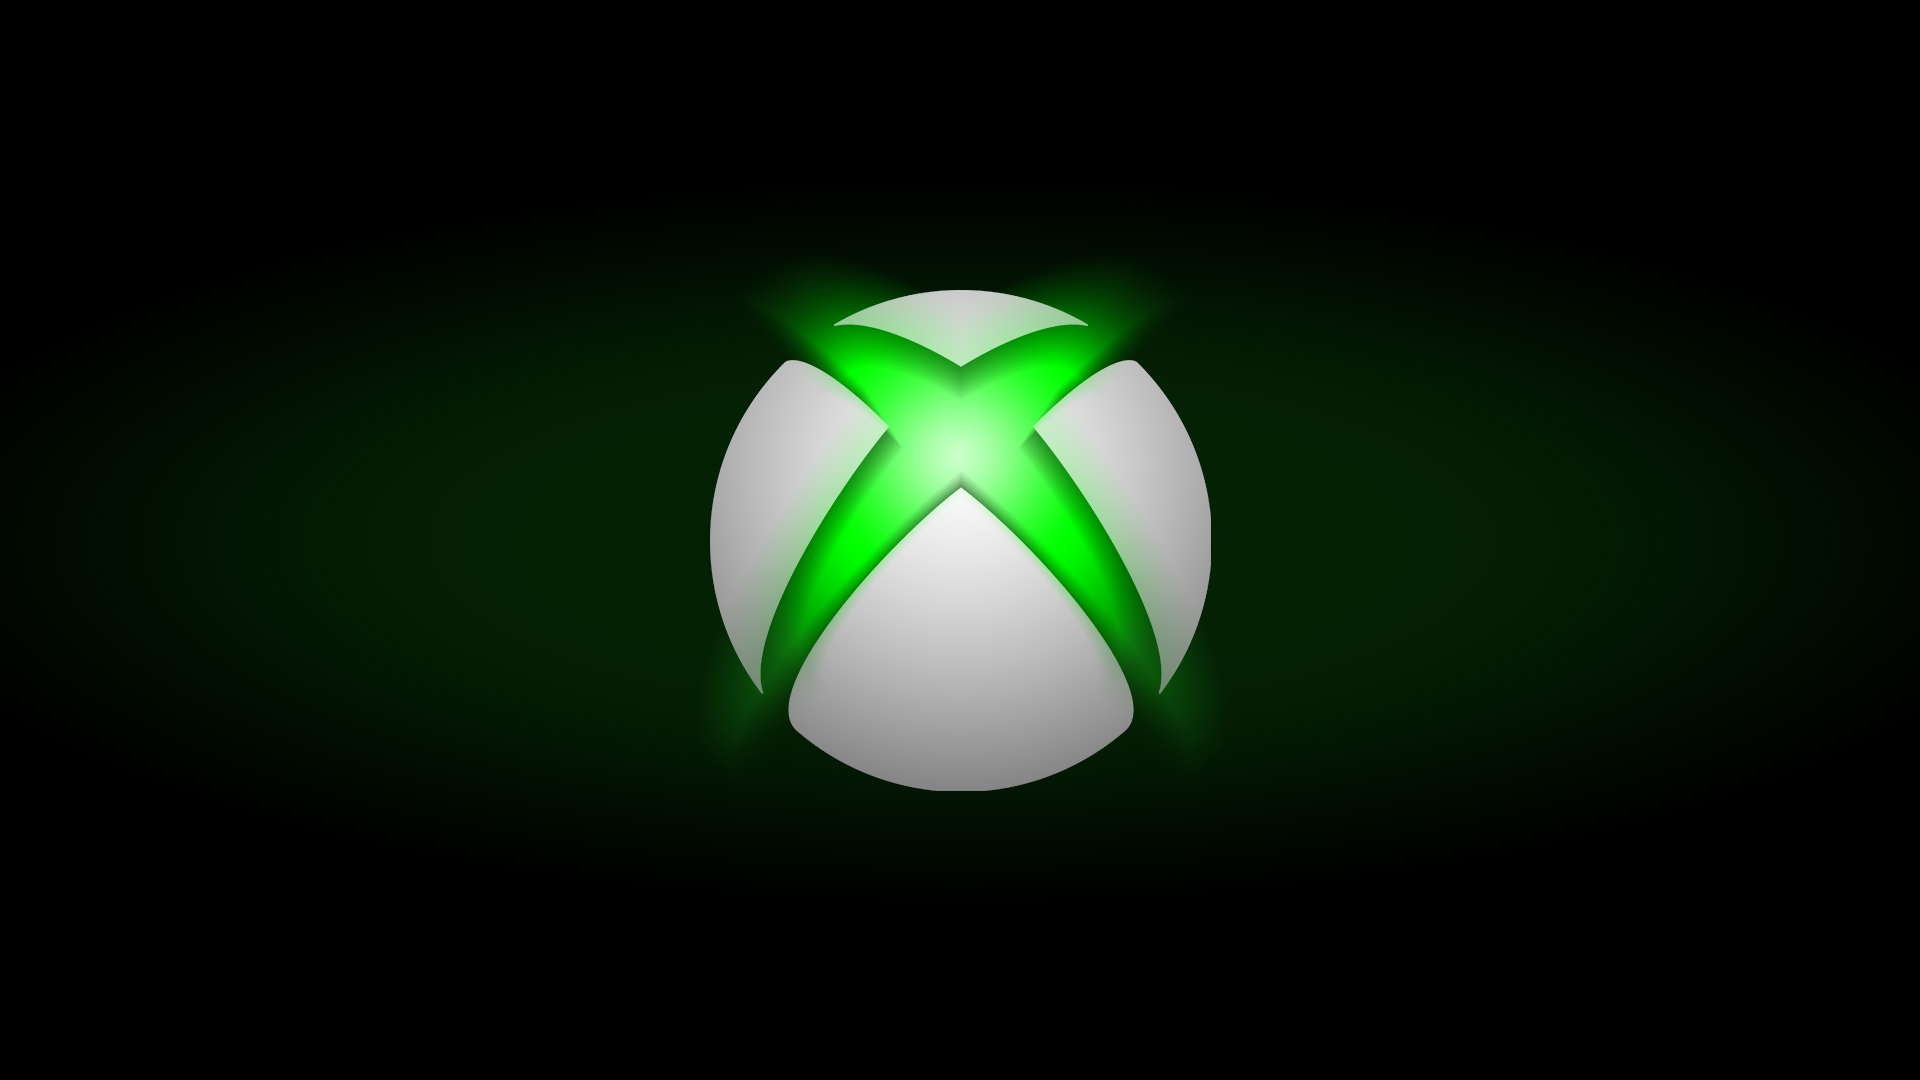 74 xbox logo wallpaper on wallpapersafari - Xbox one wallpaper 1920x1080 ...